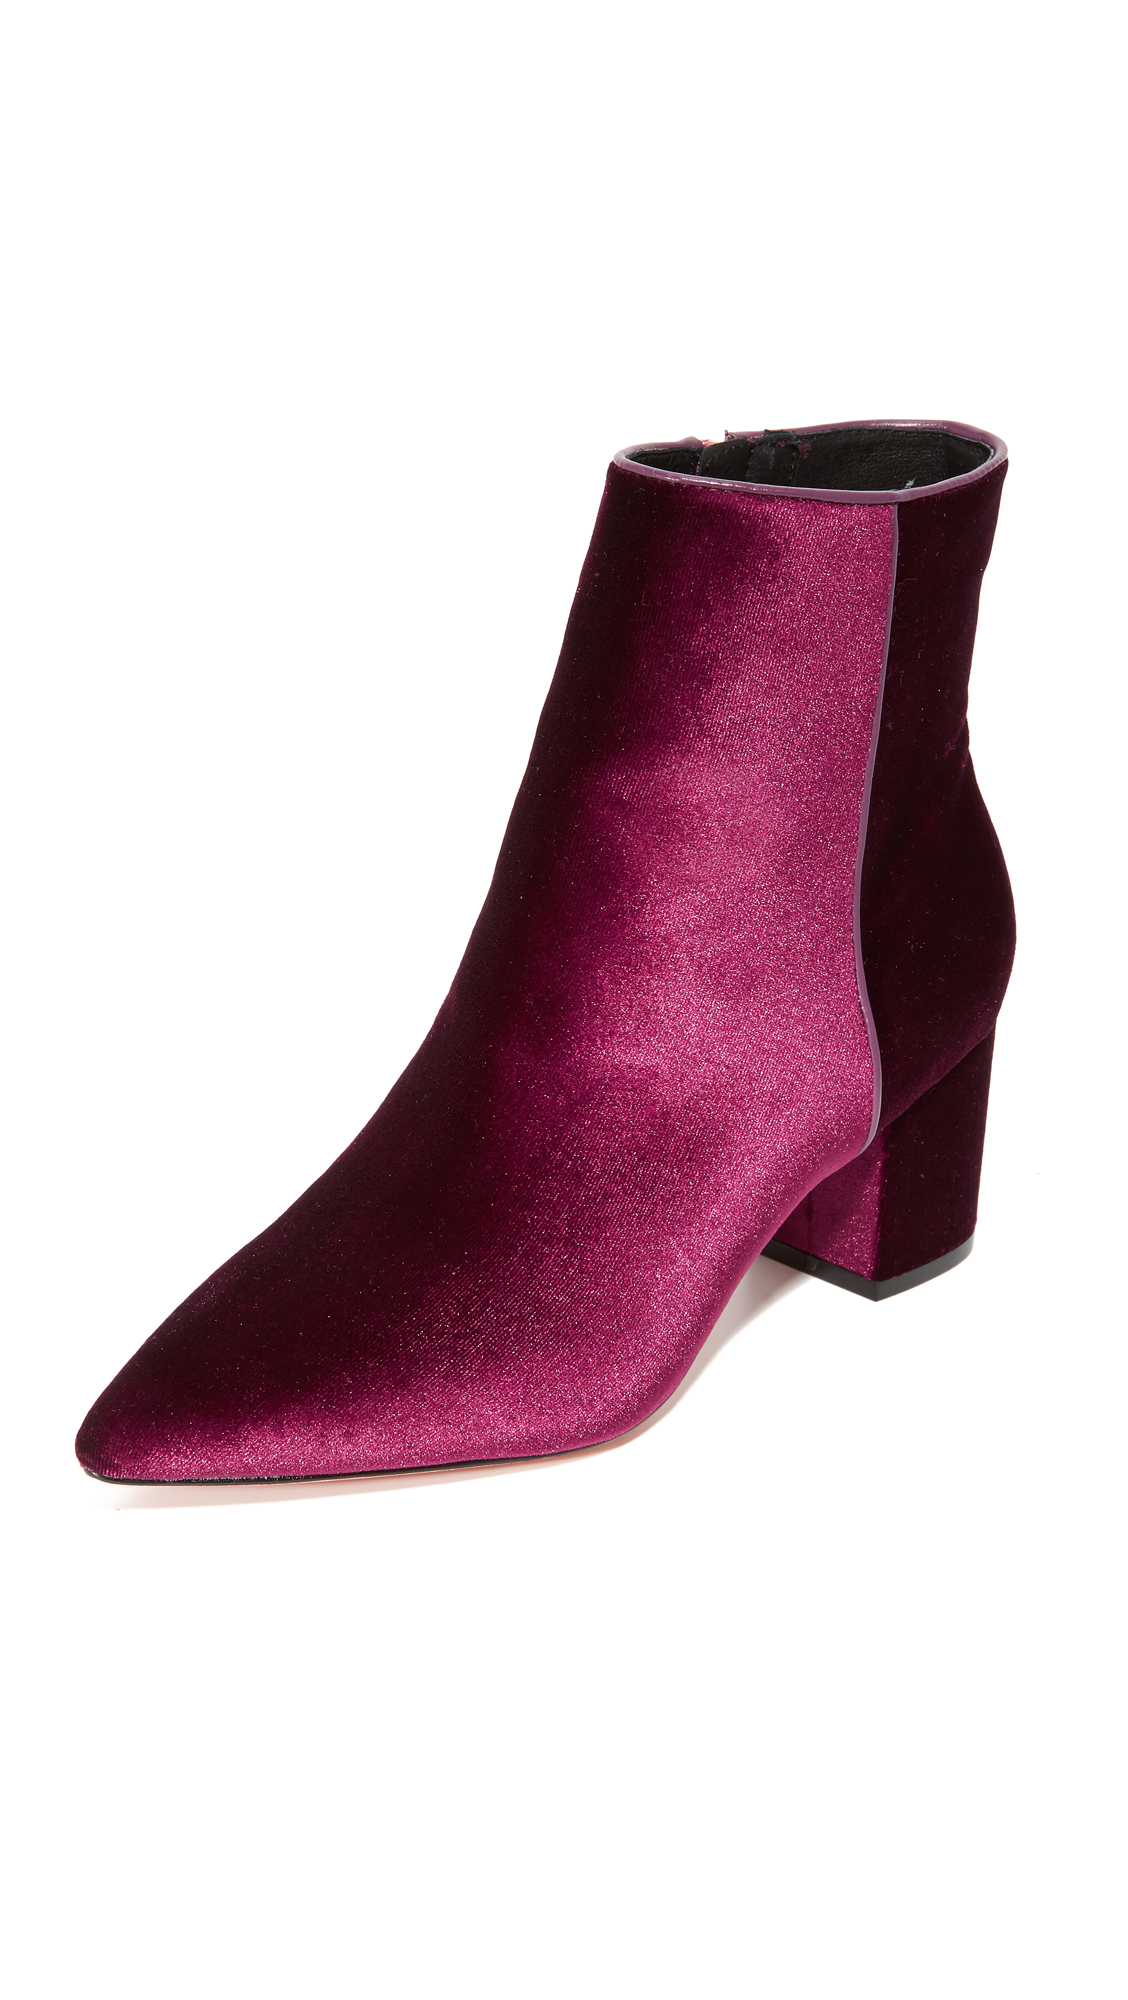 Plush velvet Steven booties in a pointed toe profile. Exposed zip at the side. Covered heel and leather sole. Fabric: Velvet. Imported, China. This item cannot be gift boxed. Measurements Heel: 2.25in / 55mm. Available sizes: 7.5,8